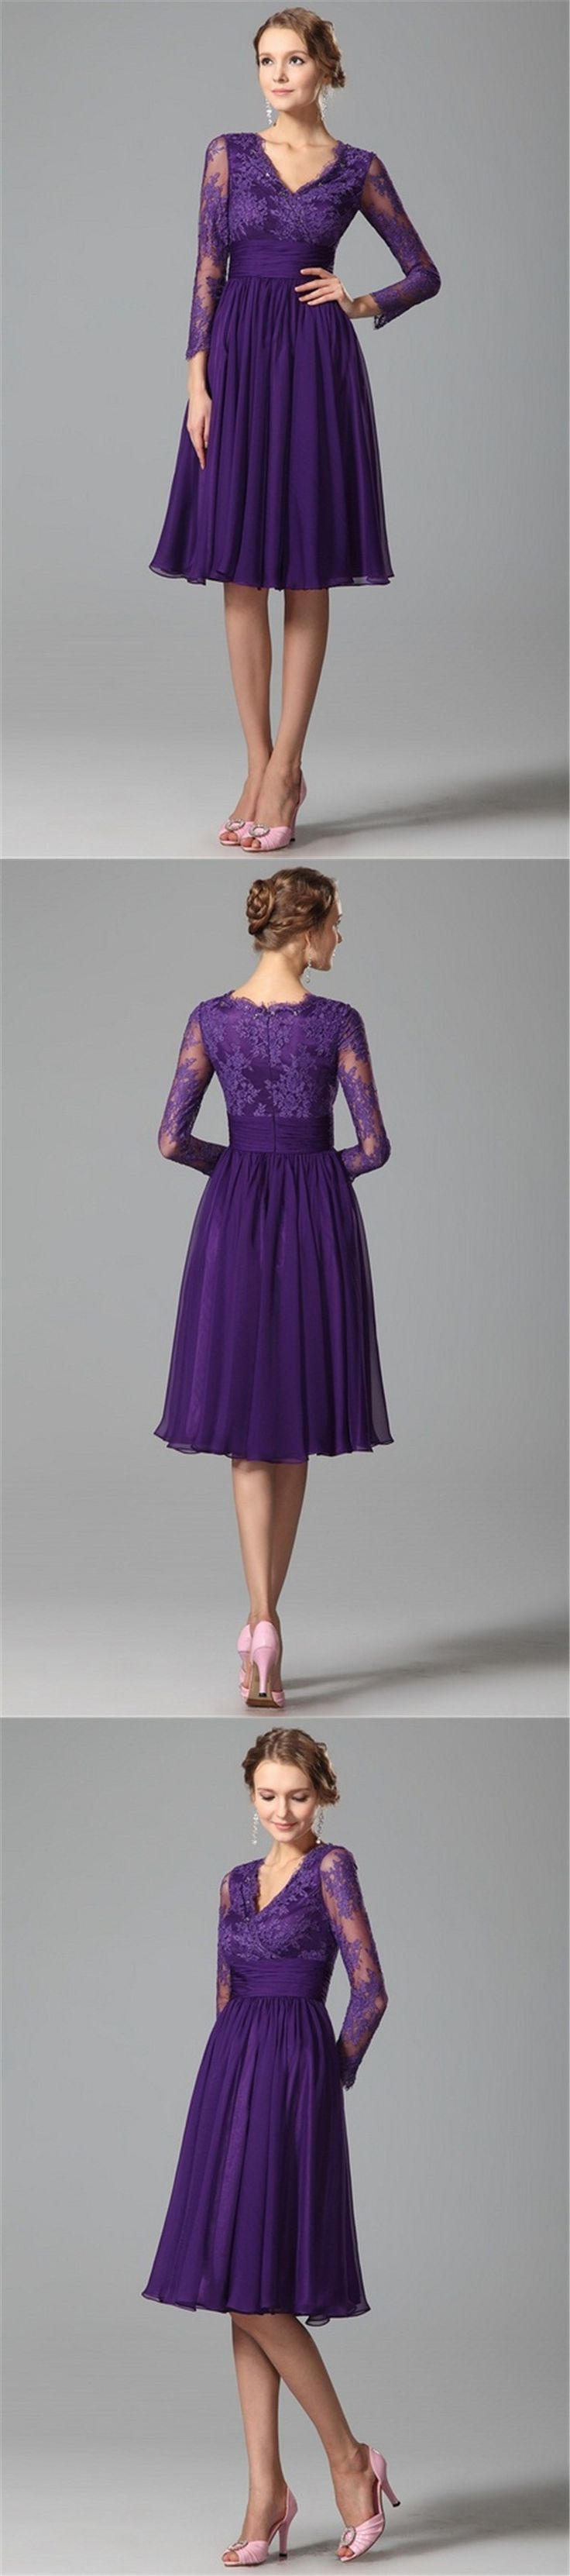 Purple bridesmaid dresses 2016 lace 3 4 long sleeves v for Cheap wedding dresses for guests